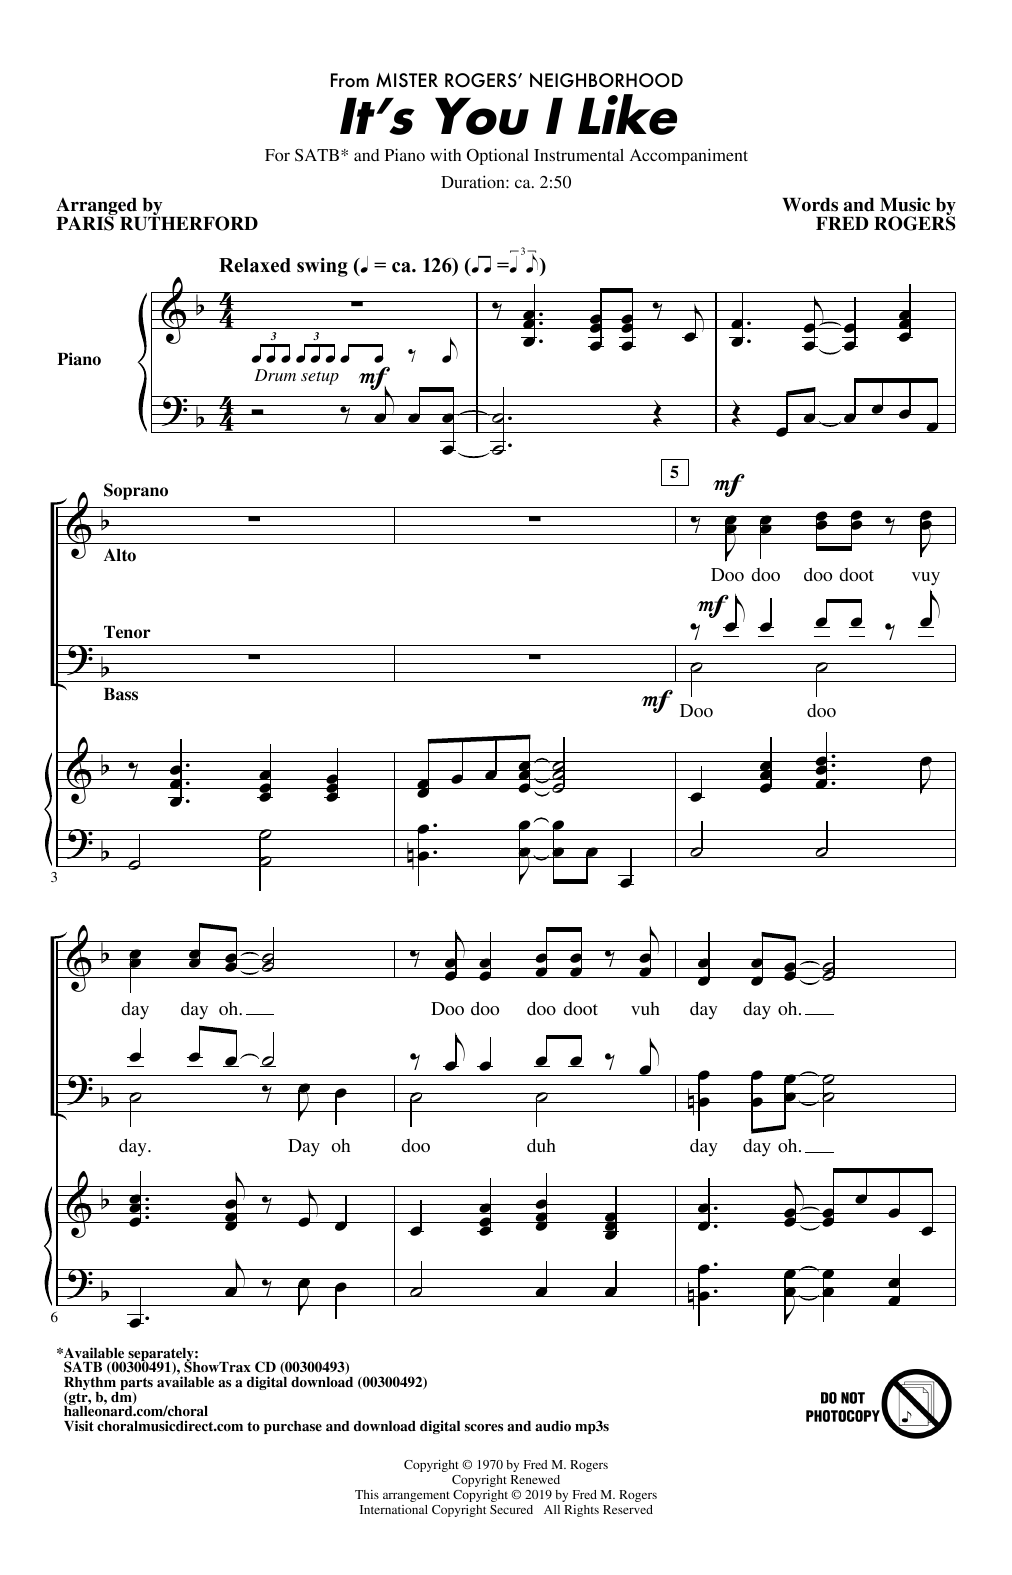 Fred Rogers It S You I Like From Mister Rogers Neighborhood Arr Paris Rutherford Sheet Music Download Pdf Score 426344